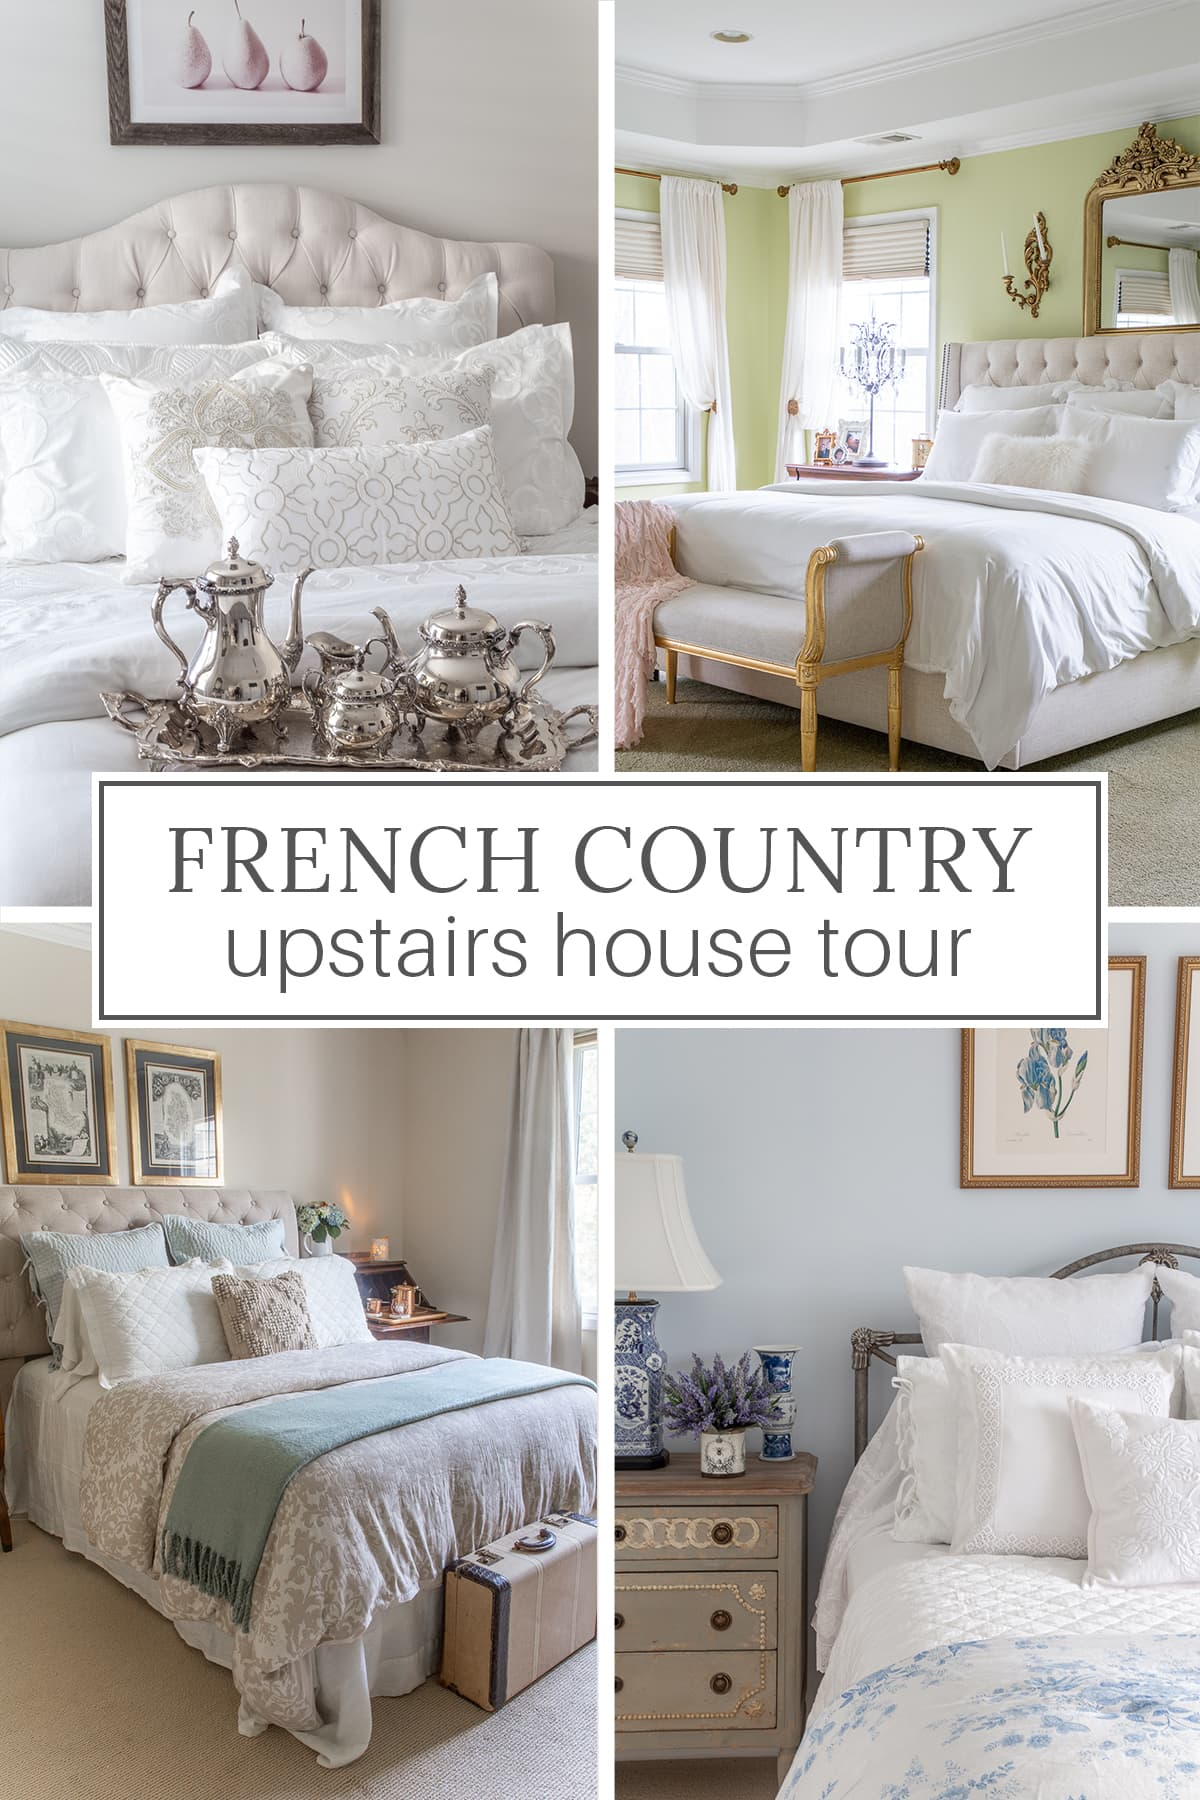 French Country upstair house tour